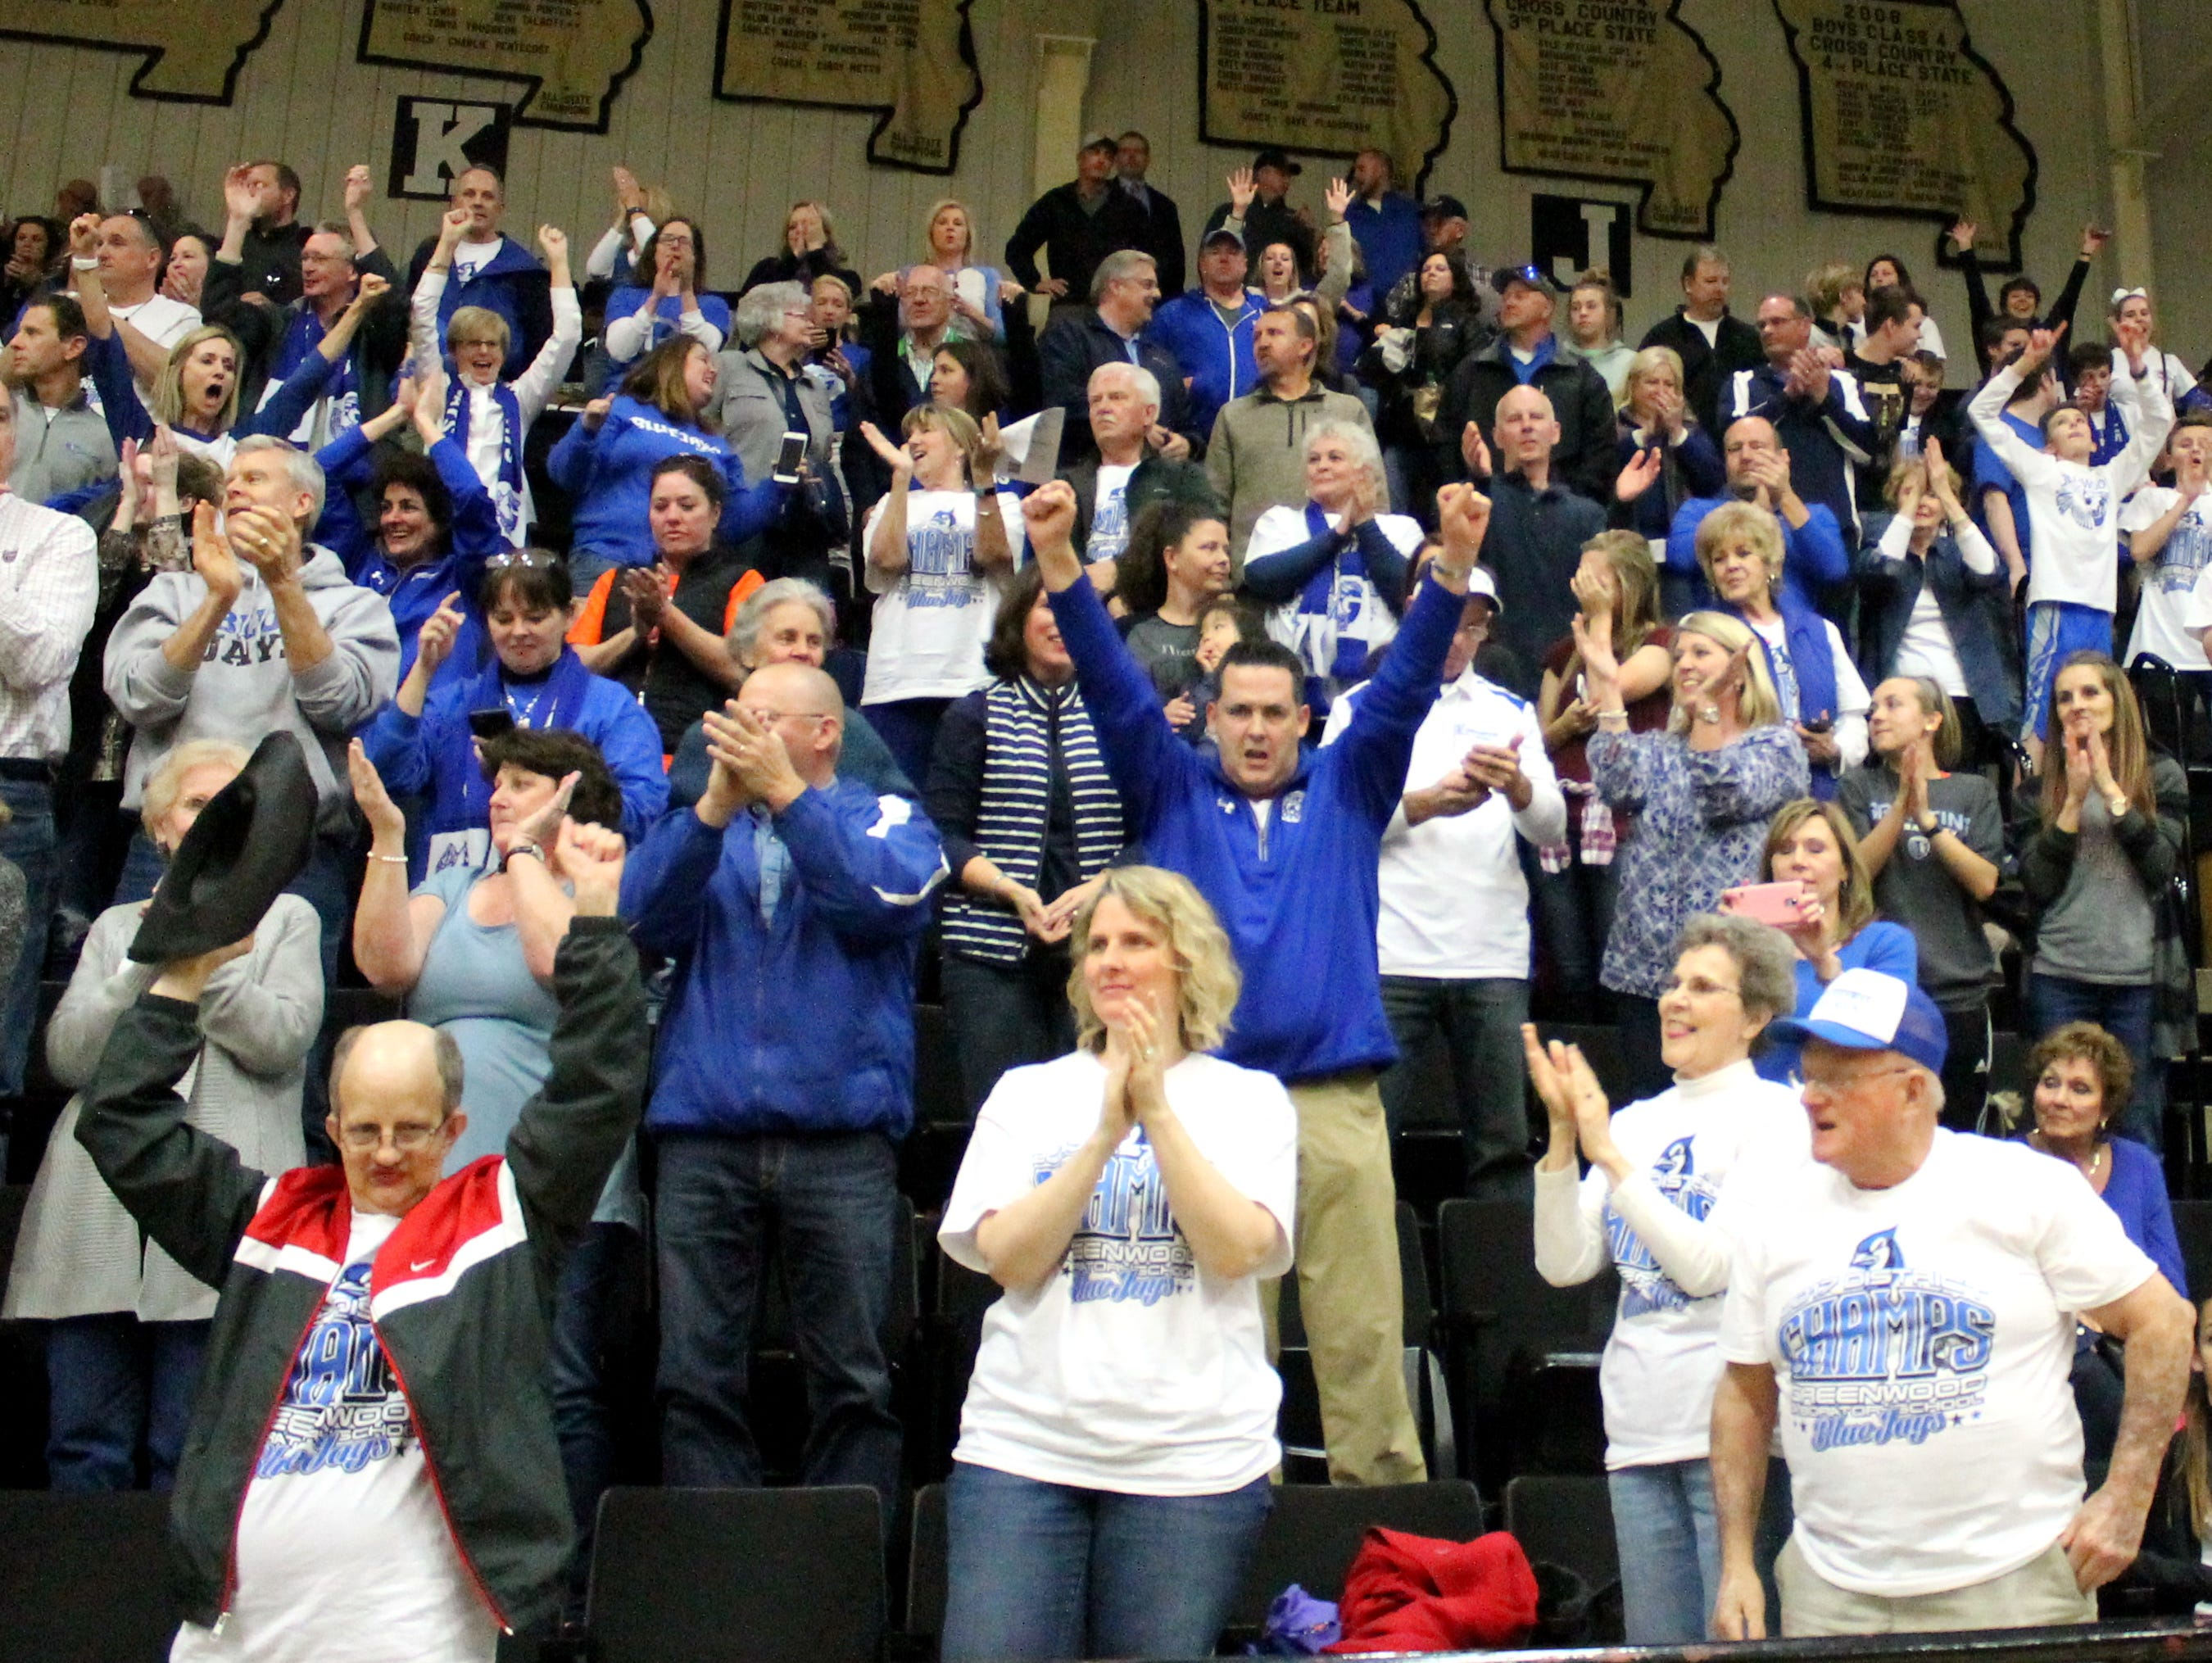 Greenwood fans react to the Blue Jays 73-70 sectional playoff win over Iberia at Lebanon's J.E. Boswell Auditorium on March 1, 2017.